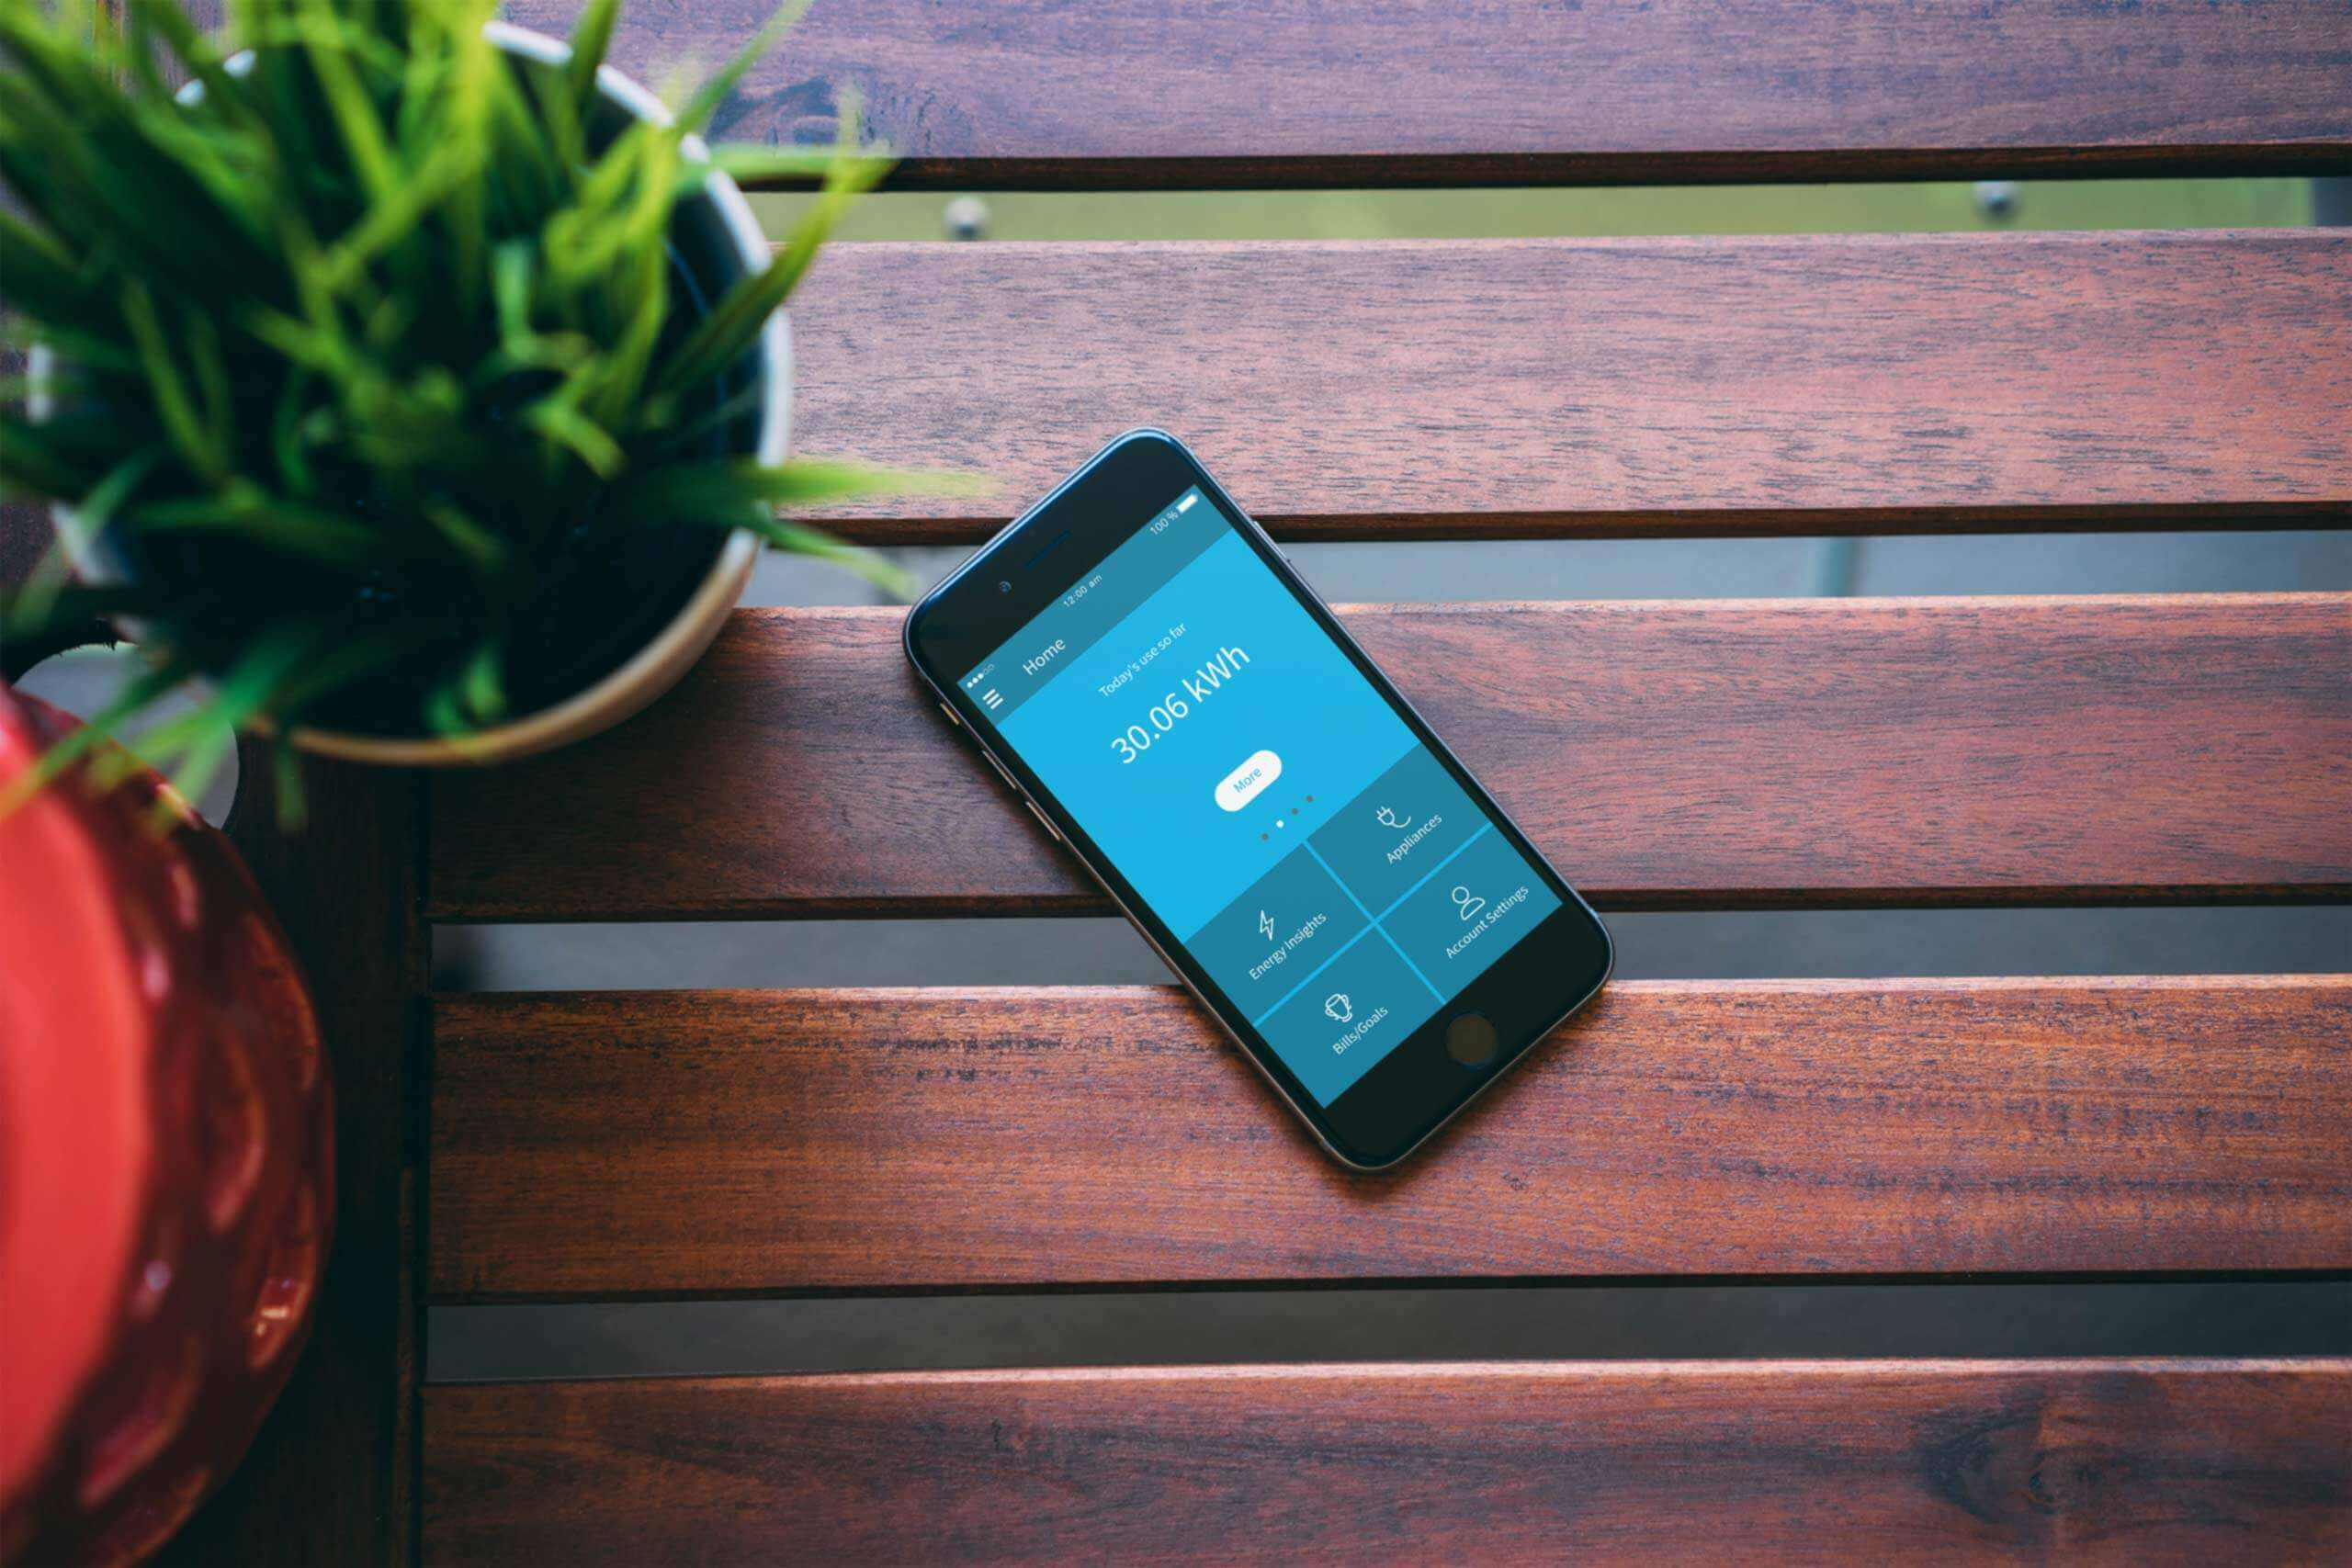 The carbonTRACK app is open on a phone sits on the dark, wooden slats of an outdoor table.